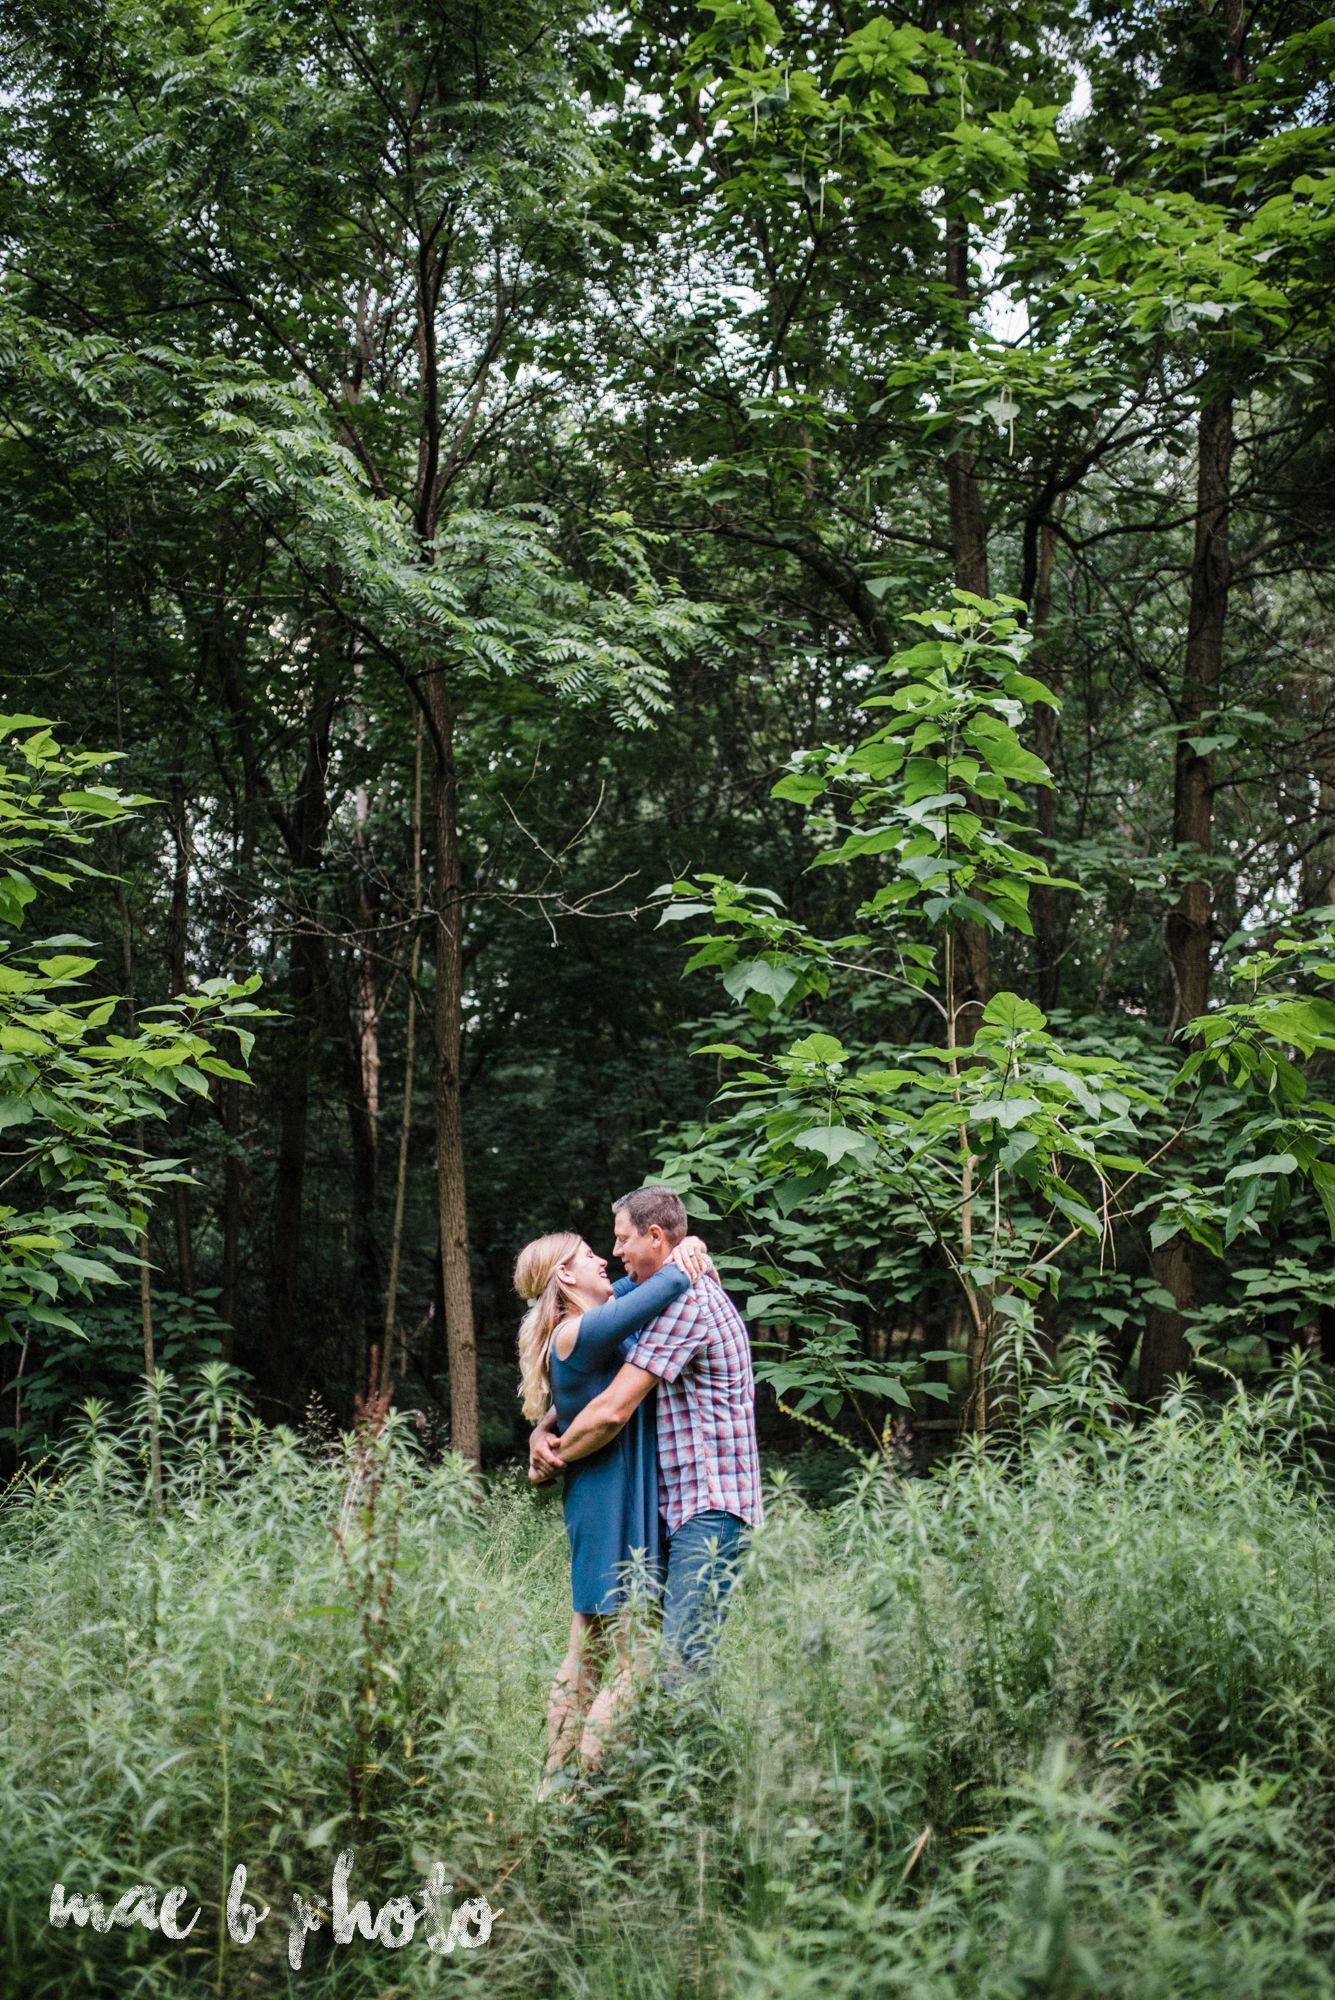 becca and rich's woodsy summer engagement session at ford nature center in mill creek park in youngstown ohio photographed by cleveland wedding photographer mae b photo-46.jpg